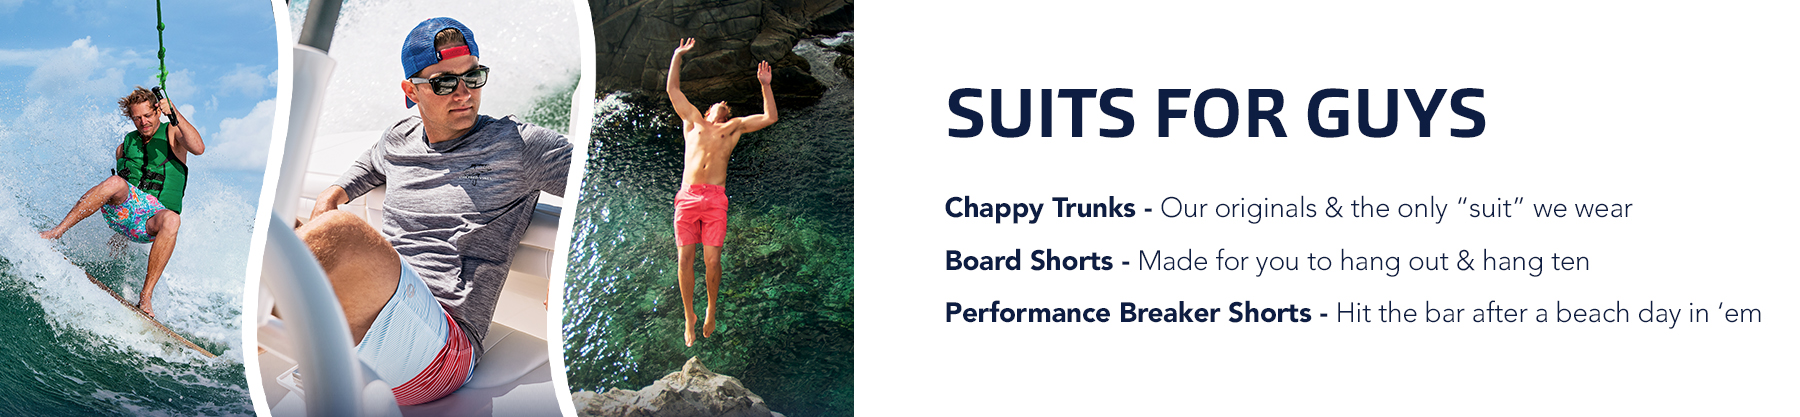 Suits For Guys: Performance Breaker - Hit the bar after a beach day in 'em, Chappy Trunks - Our originals & the only suit we wear, Board Shorts - Made for you to hang out & hang ten